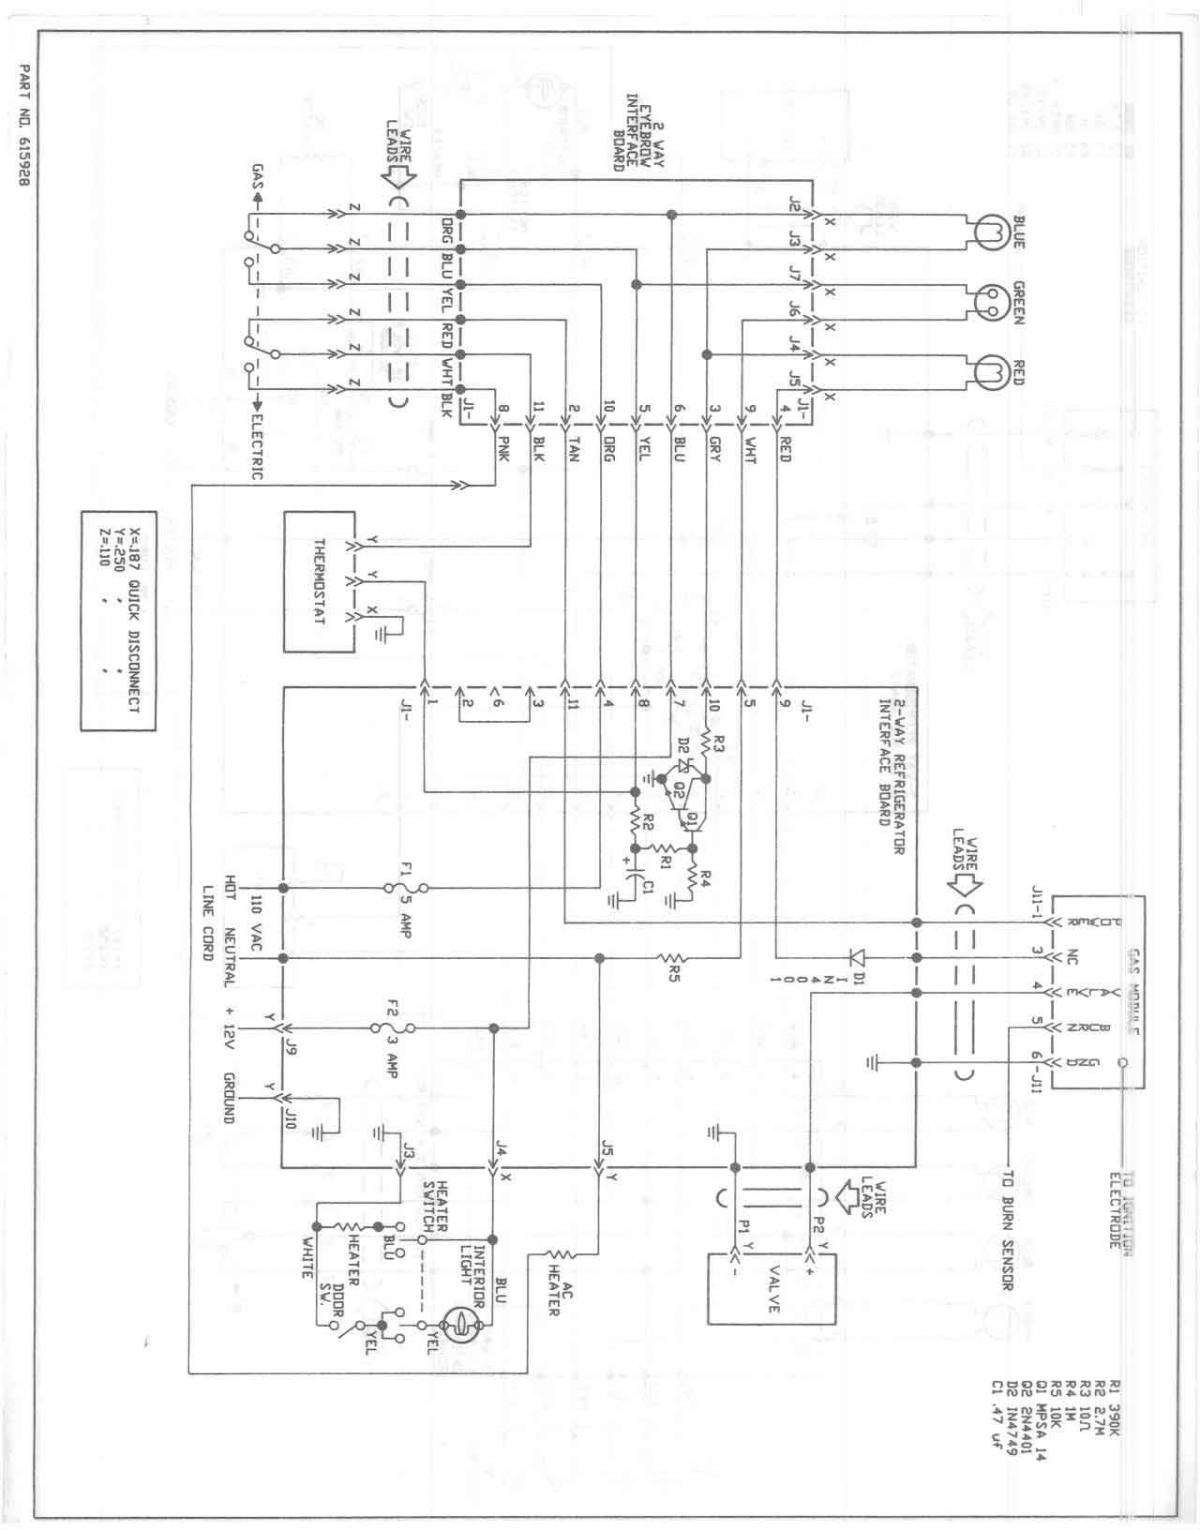 post 53486 0 36878500 1445283414 installing circuit board for norcold 838eg2? technical tips and